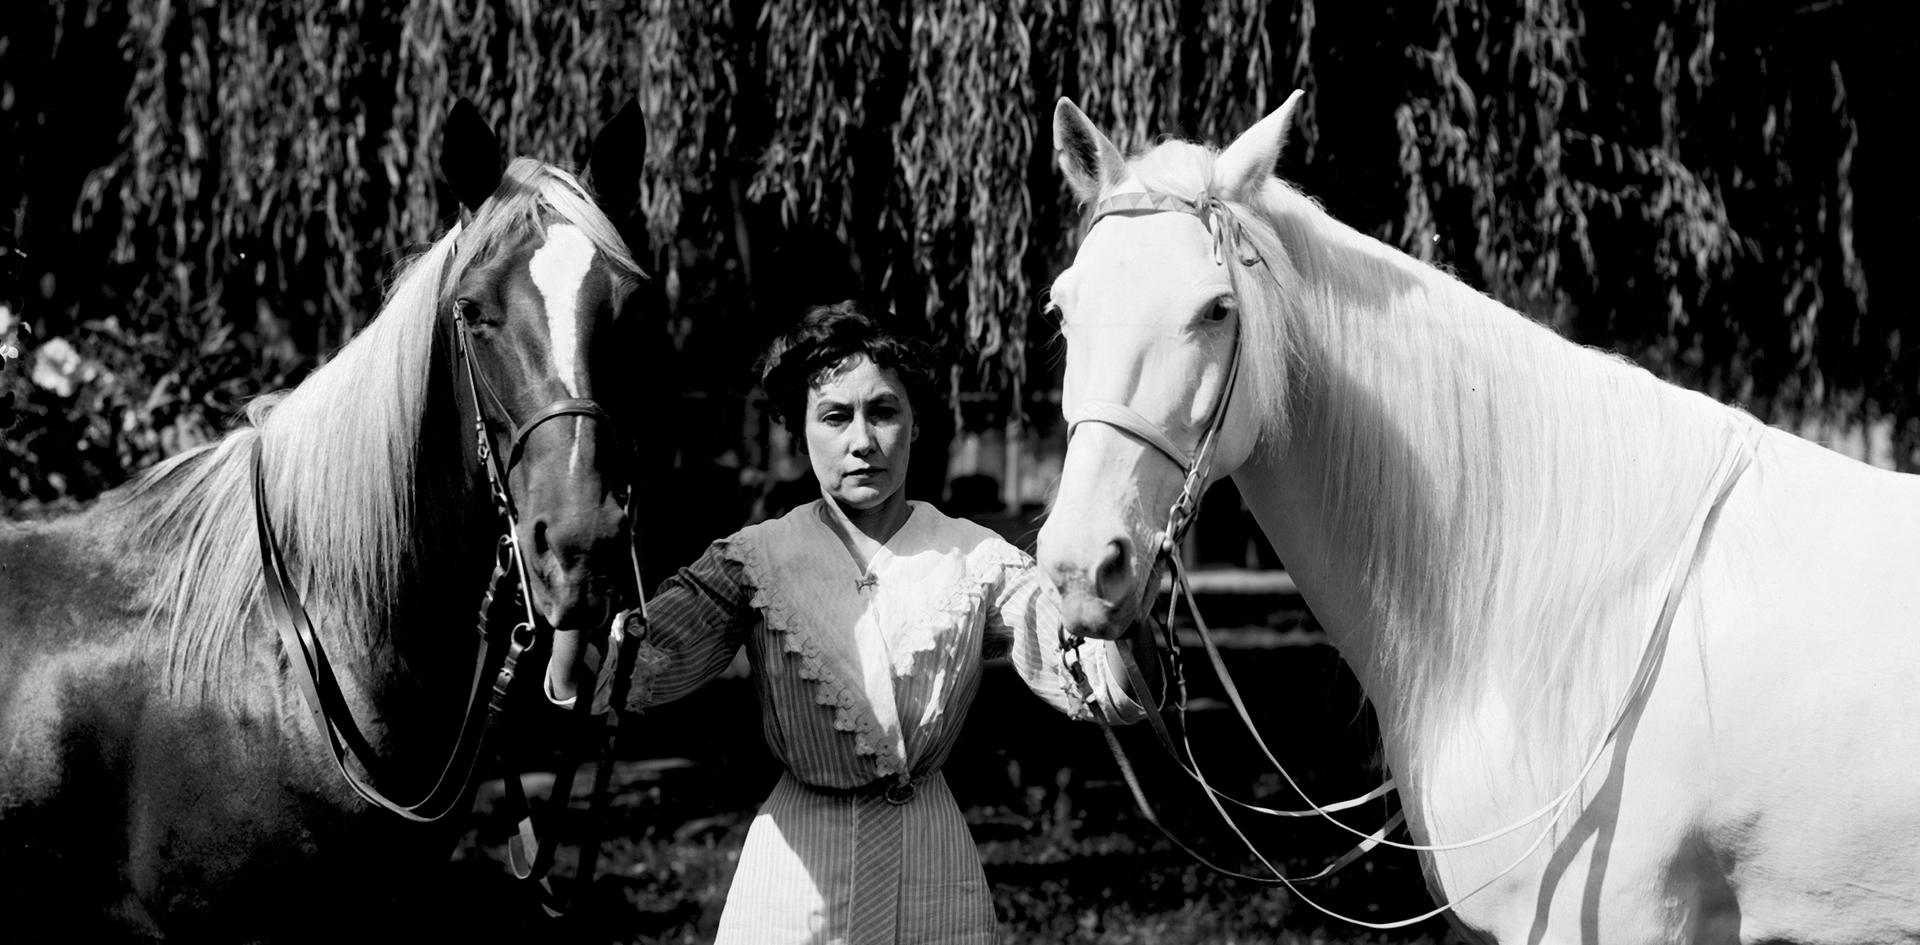 Leota Zapp and her Horses who performed at Zapp Park regularly.  Photo taken by Pop Laval.